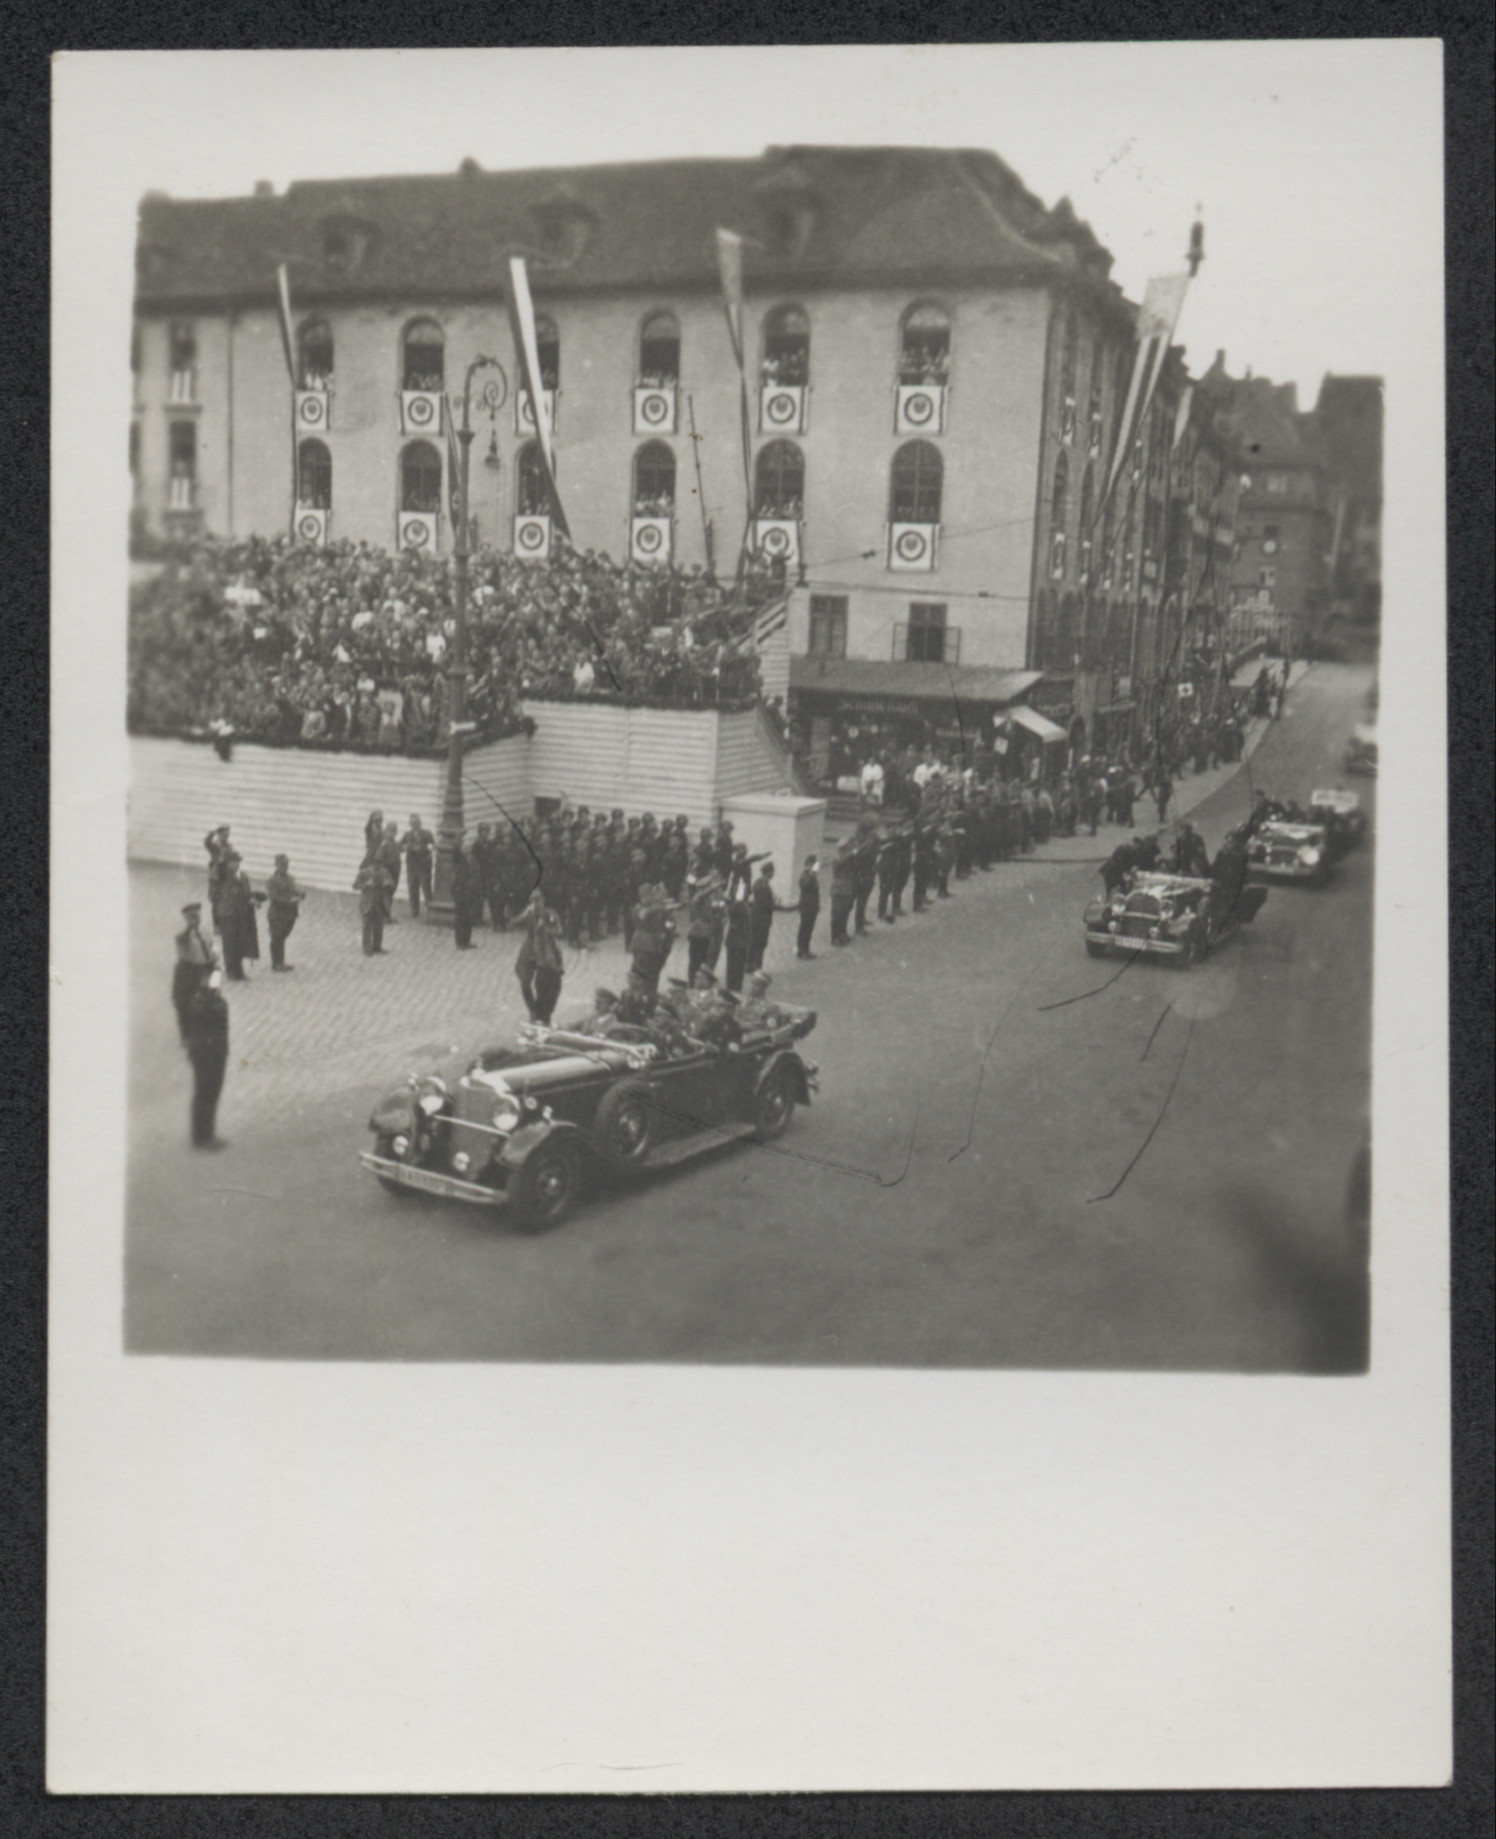 Nazi party officials drive past stands of spectators, probably during Reich Party Day in Nuremberg.